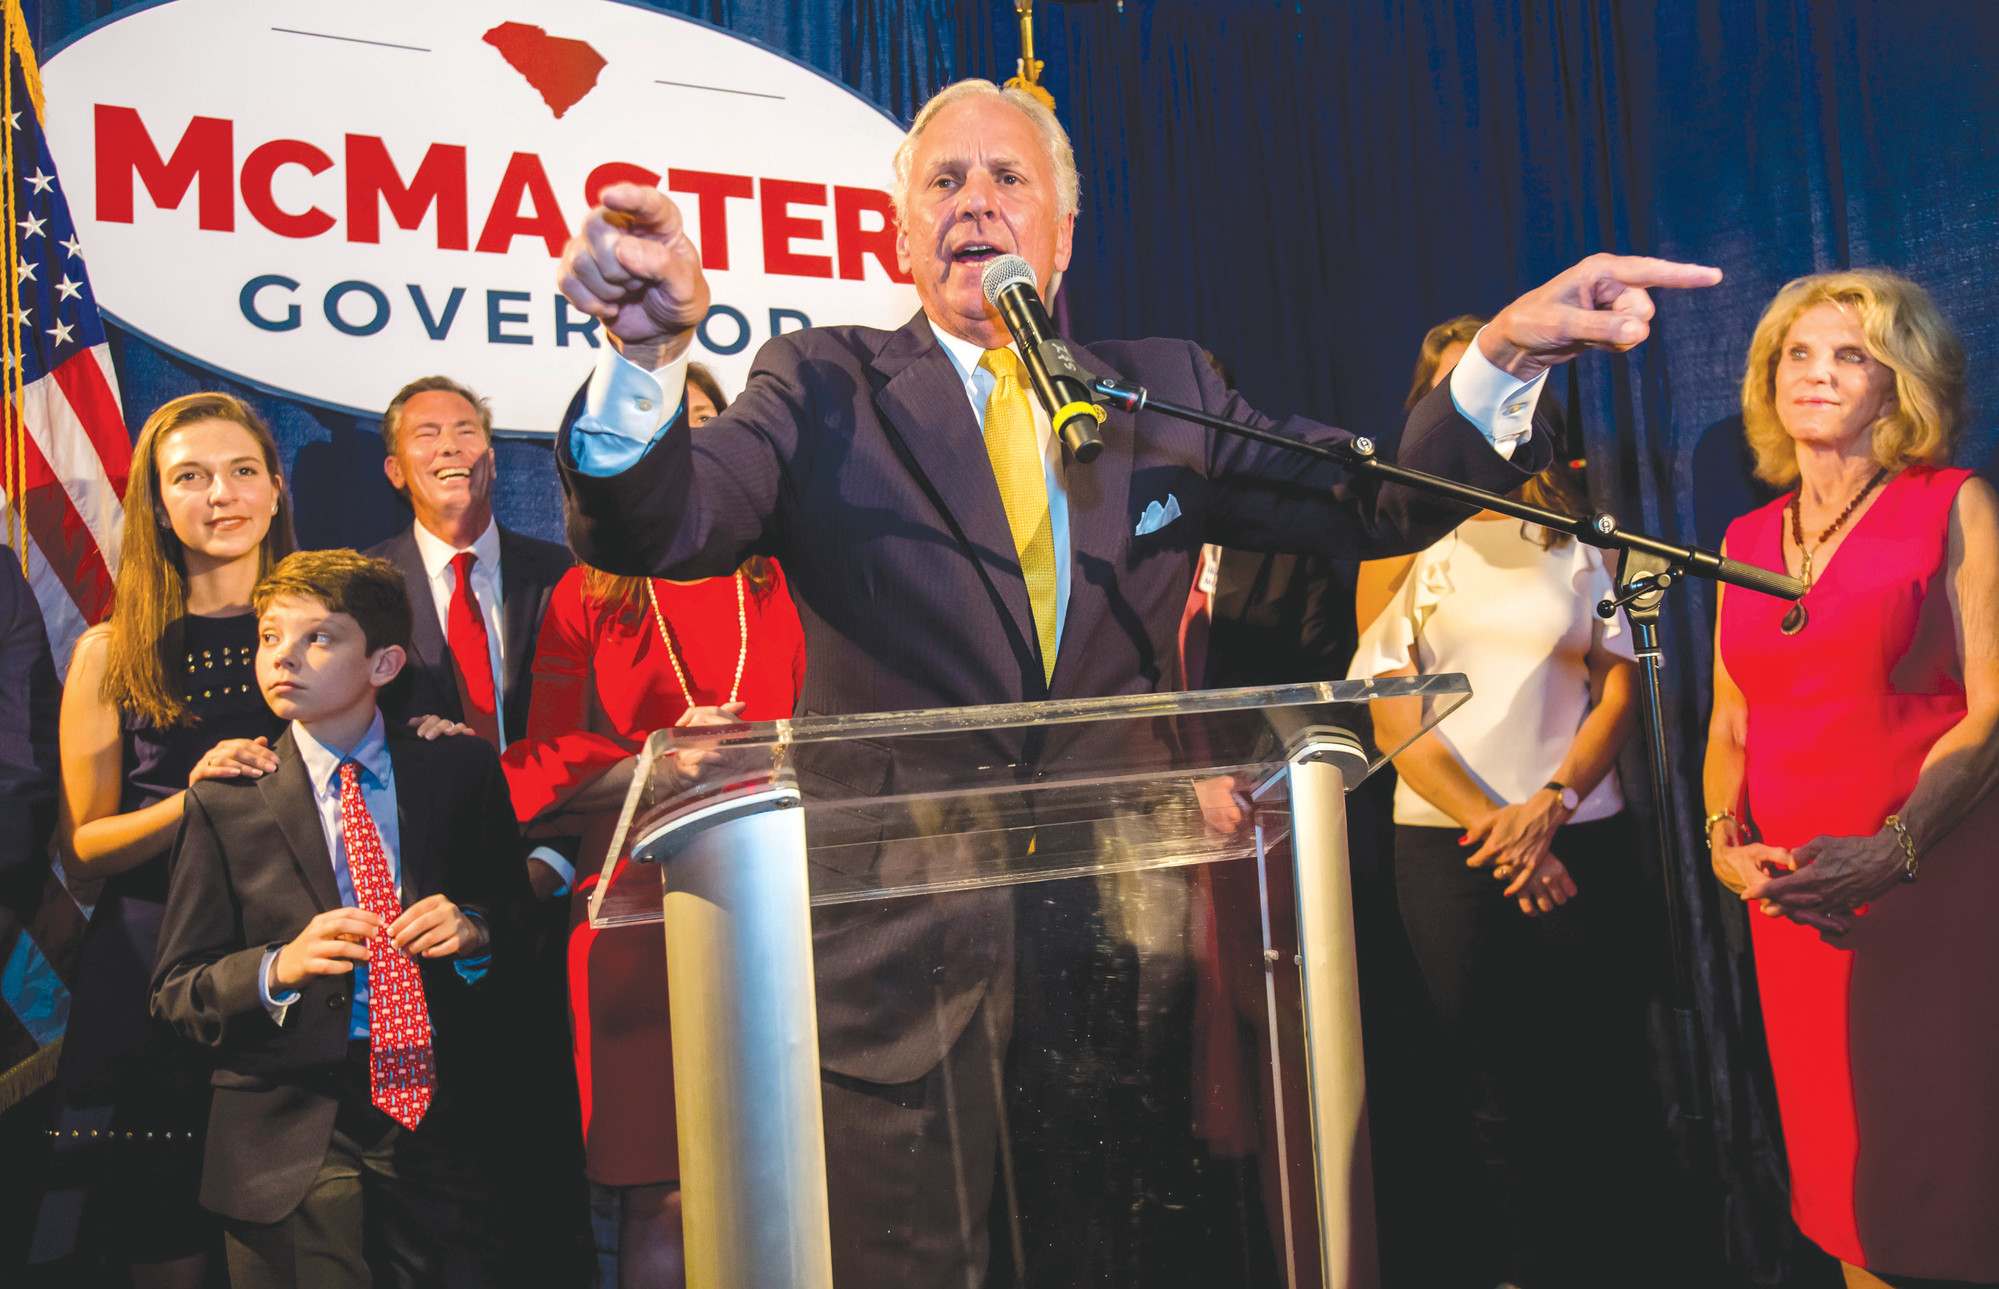 South Carolina Gov. Henry McMaster speaks at his election night party at Vista Union Tuesday, June 12, 2018 in Columbia, S.C. McMaster was forced into a runoff for the Republican gubernatorial nomination. He  was the top vote-getter in primary voting but failed to win the 50 percent necessary to avoid a runoff. He and Greenville businessman John Warren will face off in a second contest on June 26. (Jeff Blake/The State via AP)